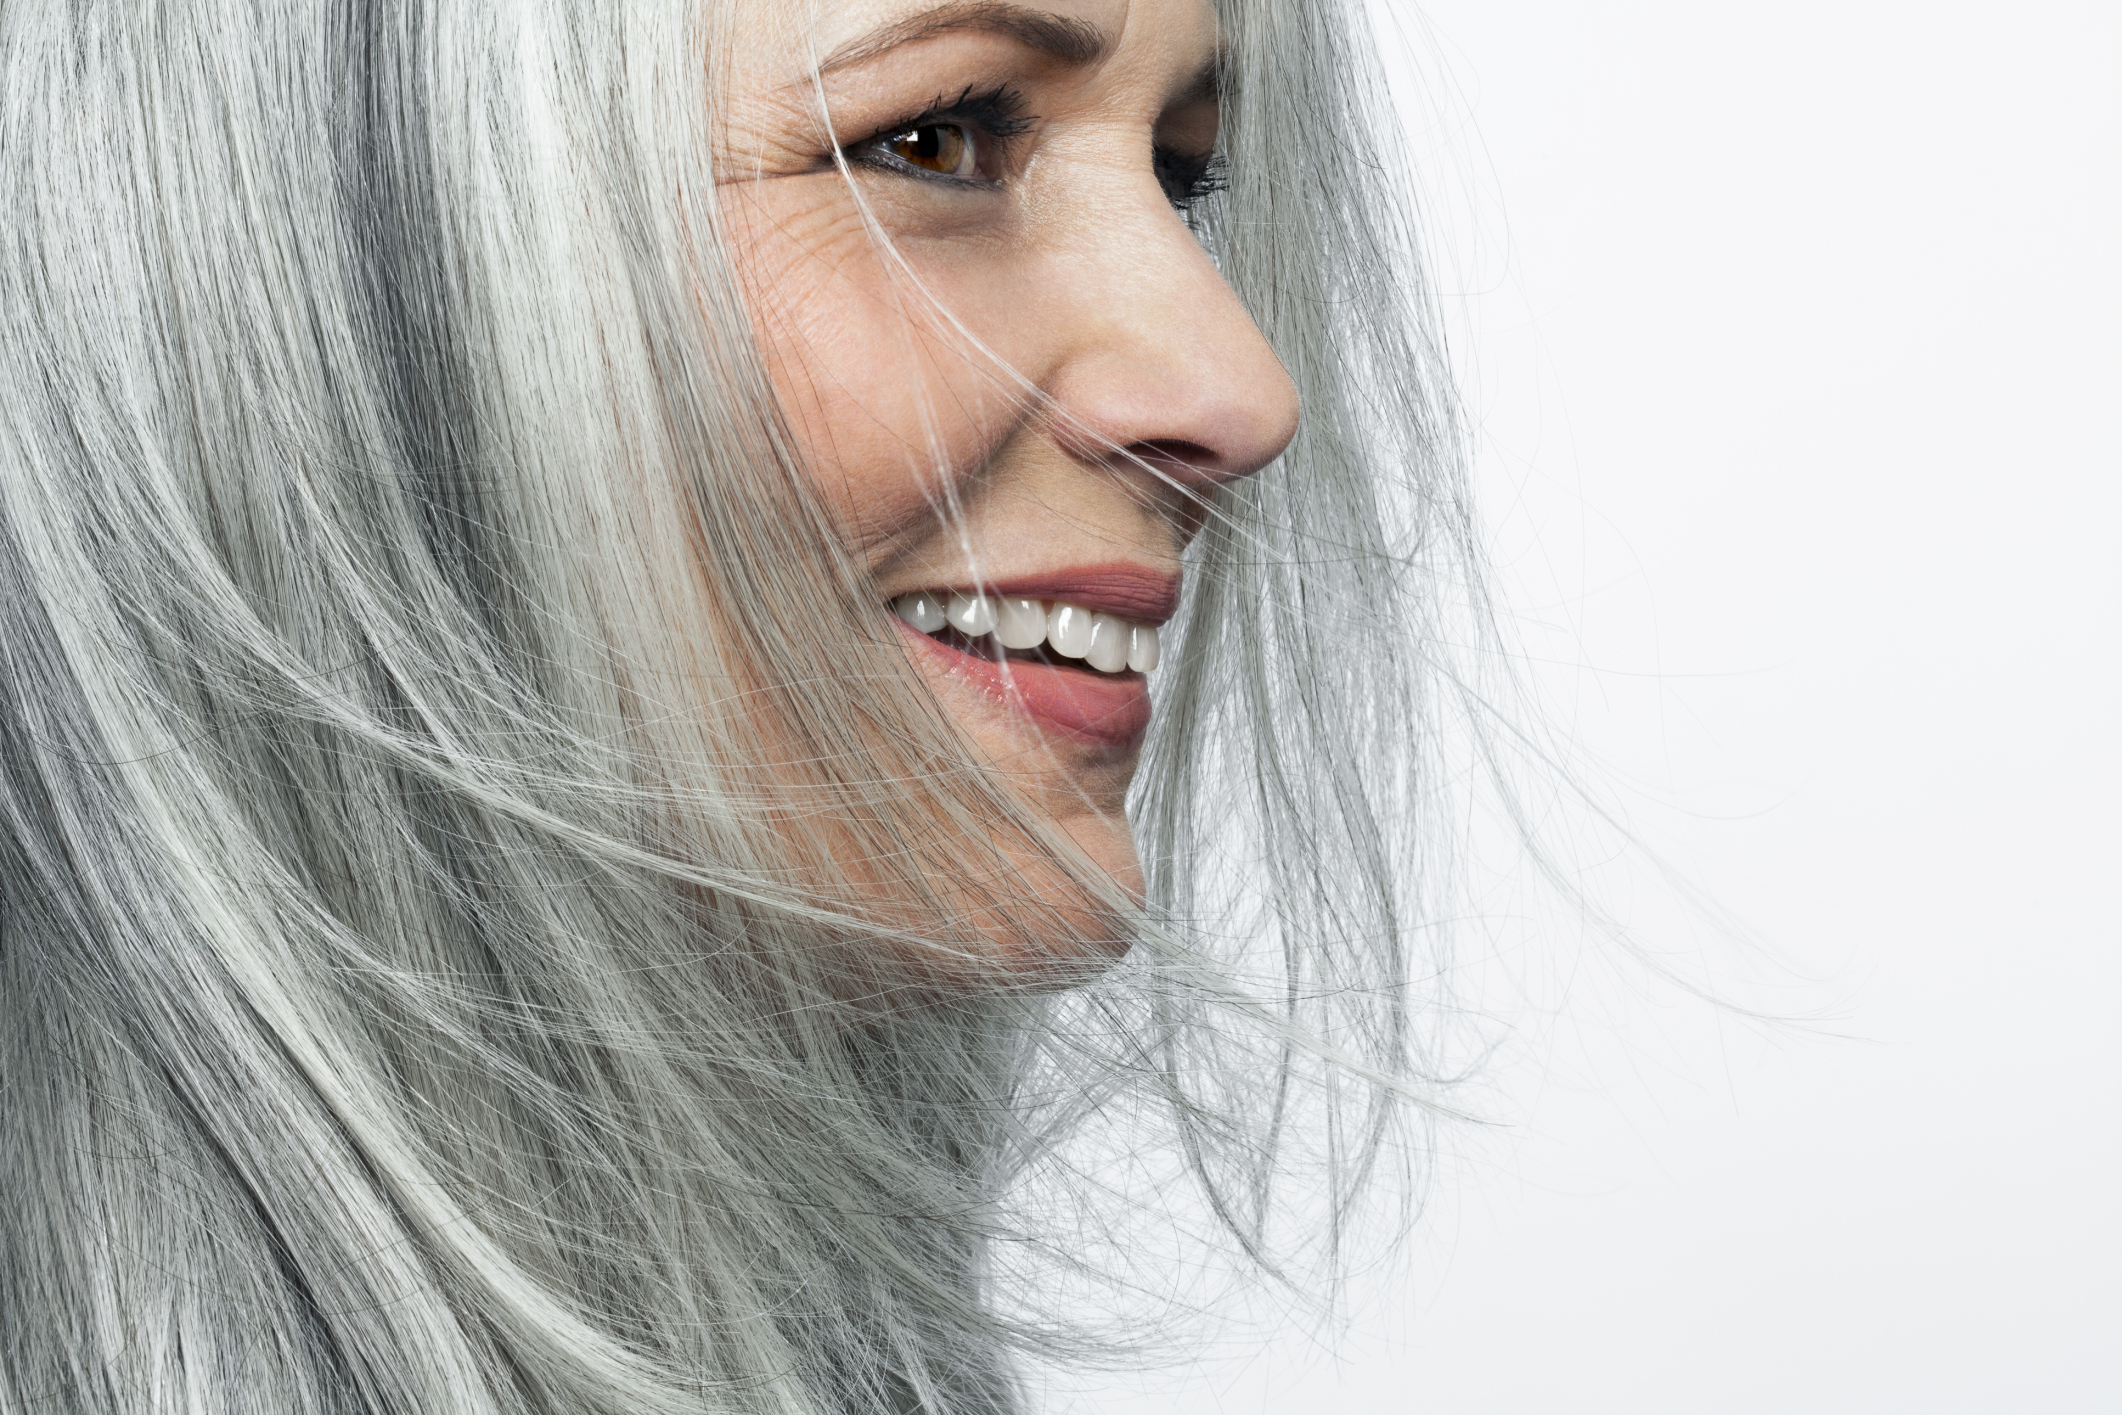 Hairstyles for women with white hair trend hairstyle and haircut ideas hairstyle mistakes that age you haircuts that make you look old winobraniefo Images